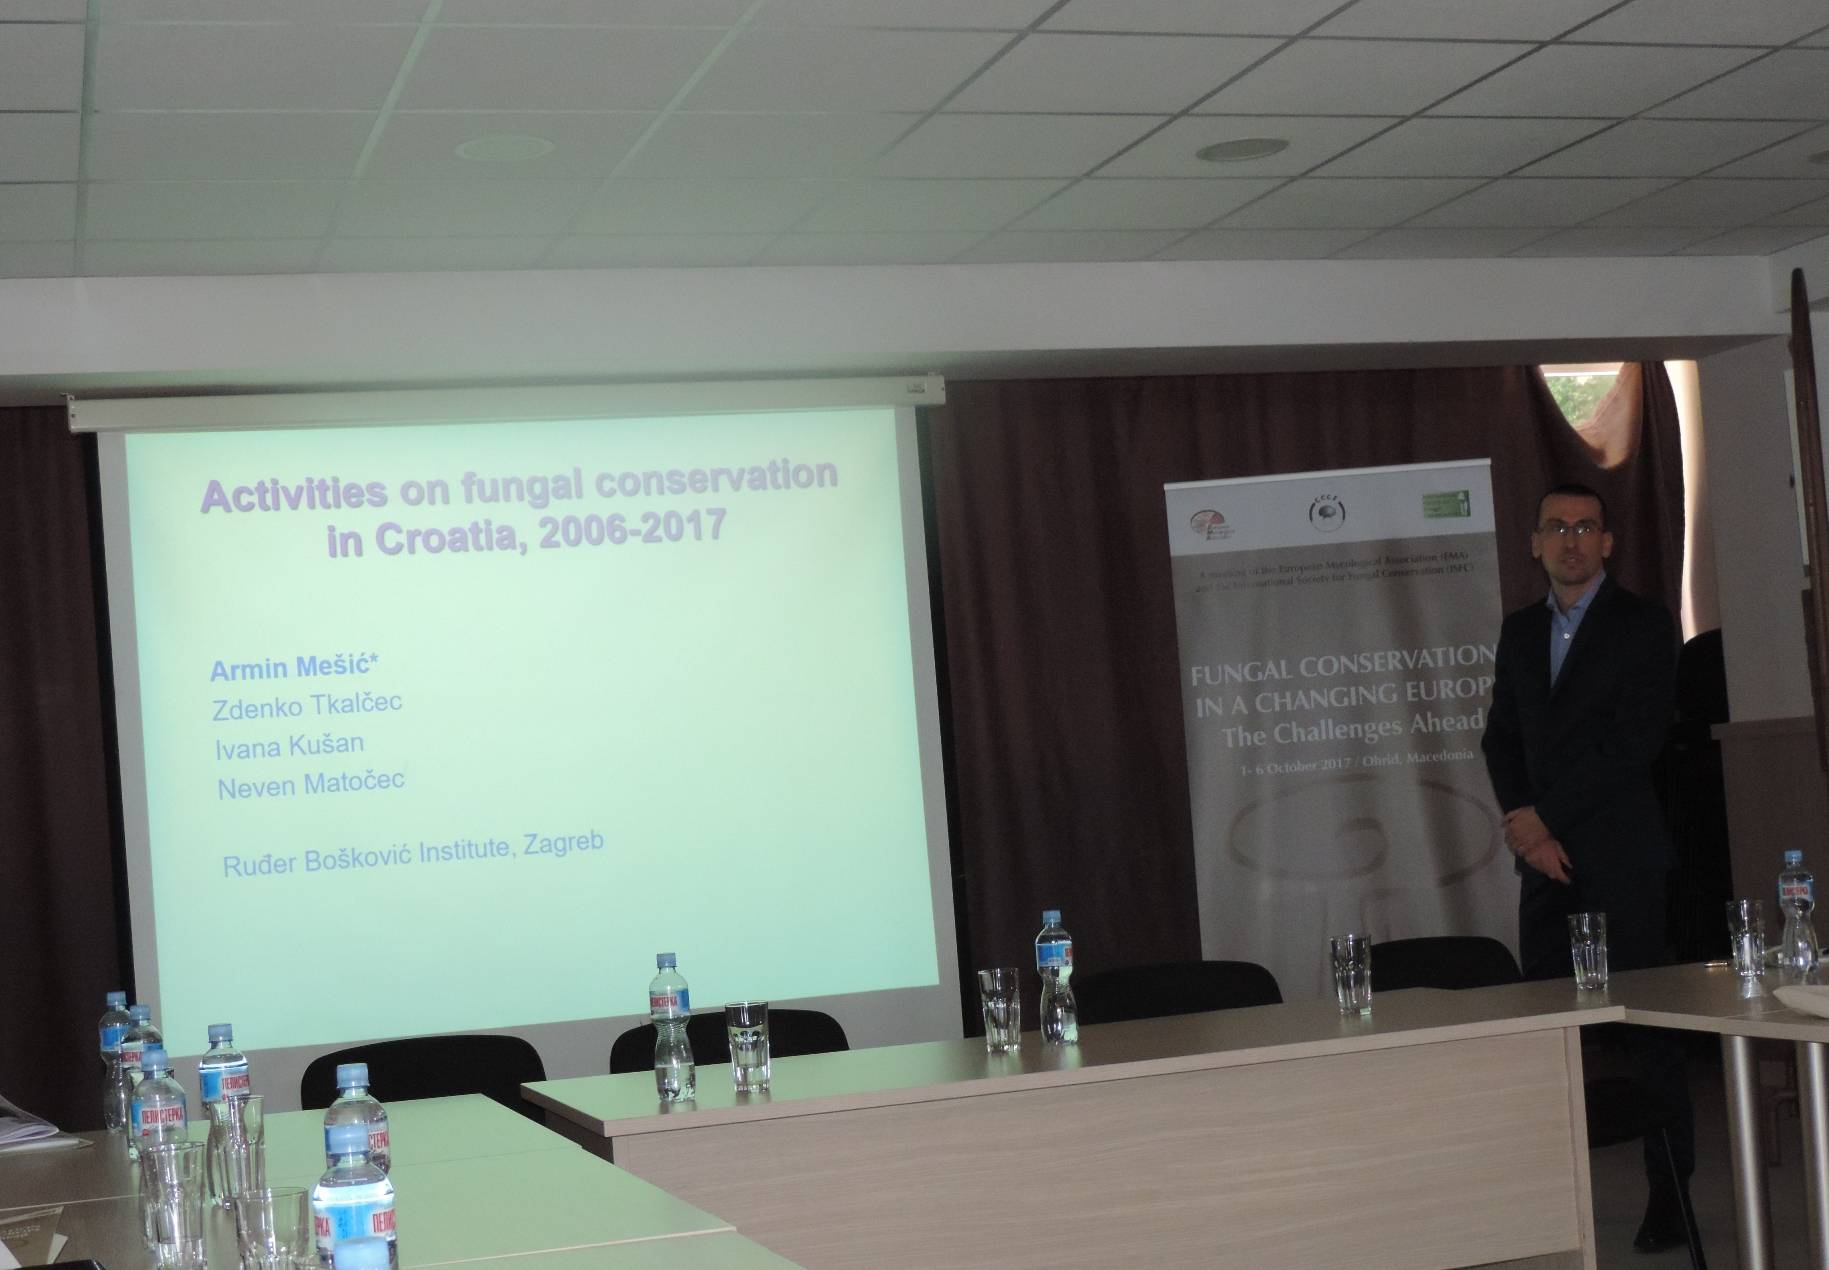 Armin Mesic on fungal conservation efforts in Croatia